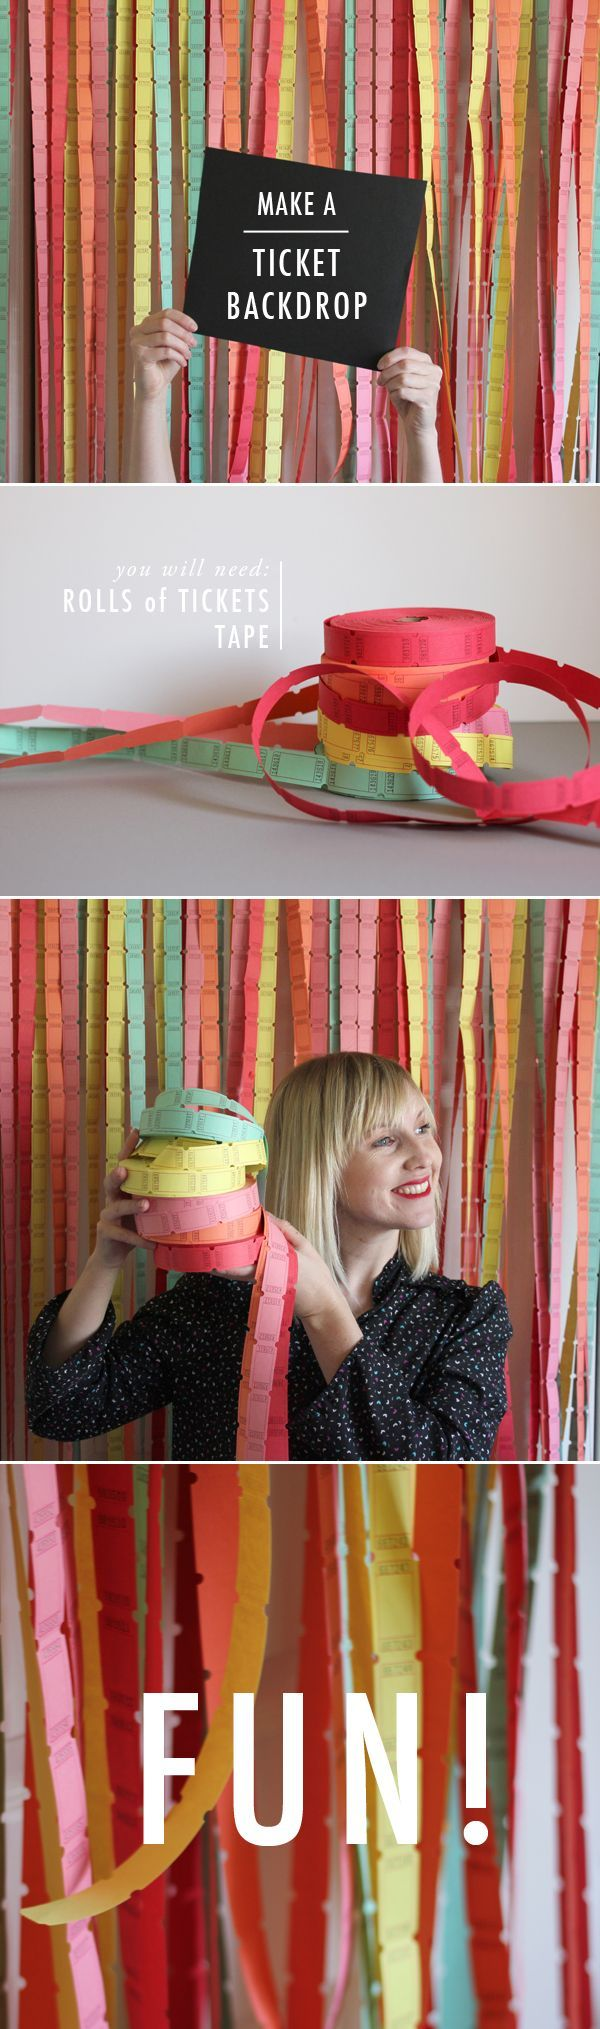 DIY: Make a ticket photobooth party backdrop